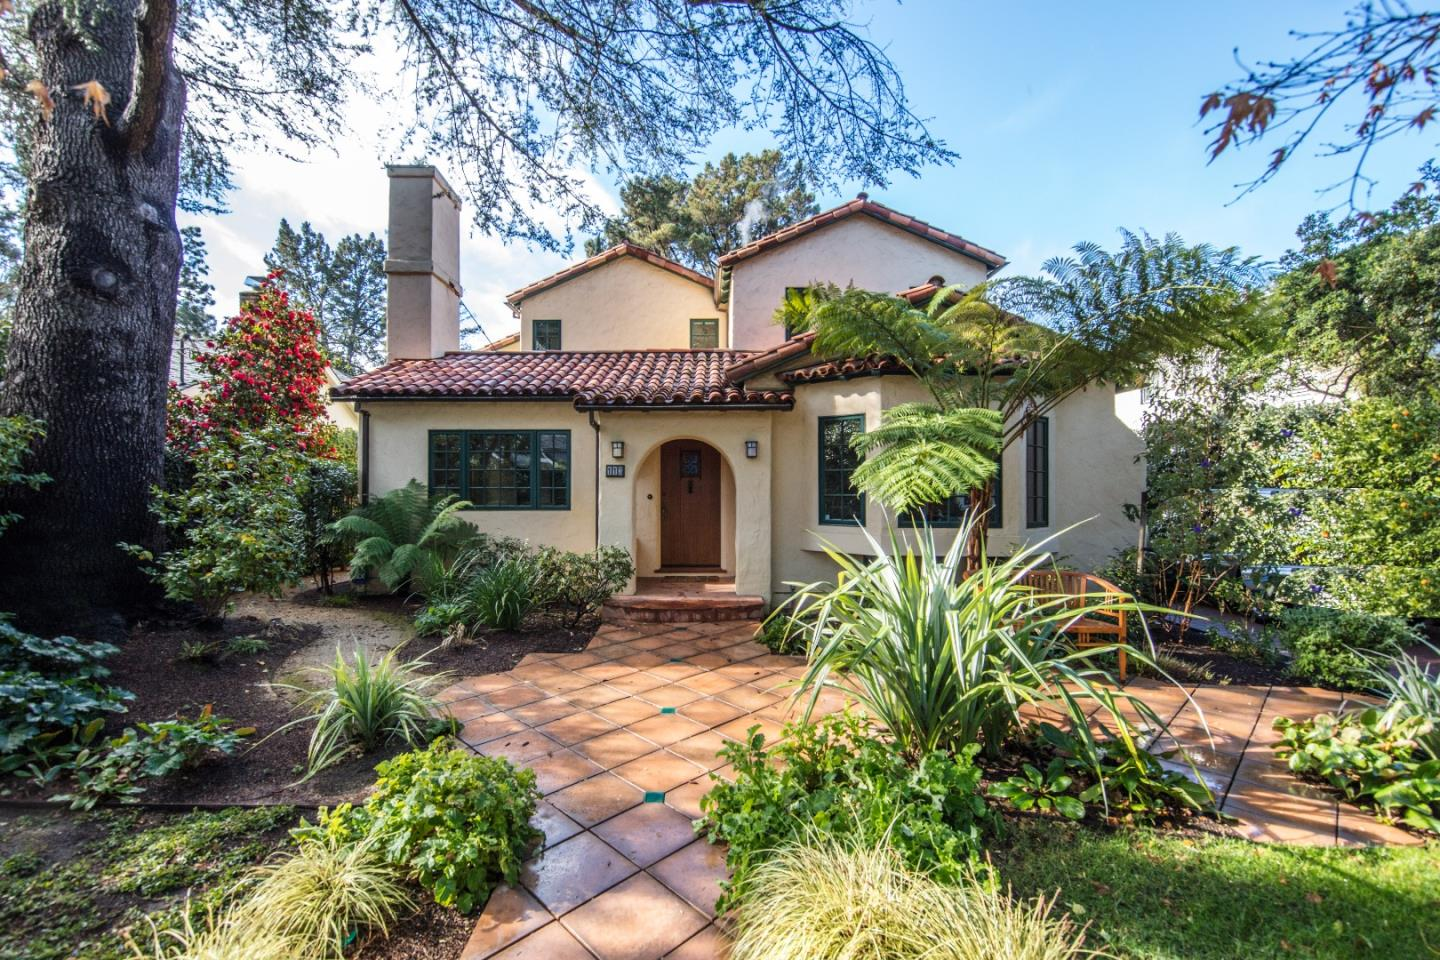 Single Family Home for Sale at 113 Princeton Road 113 Princeton Road Menlo Park, California 94025 United States